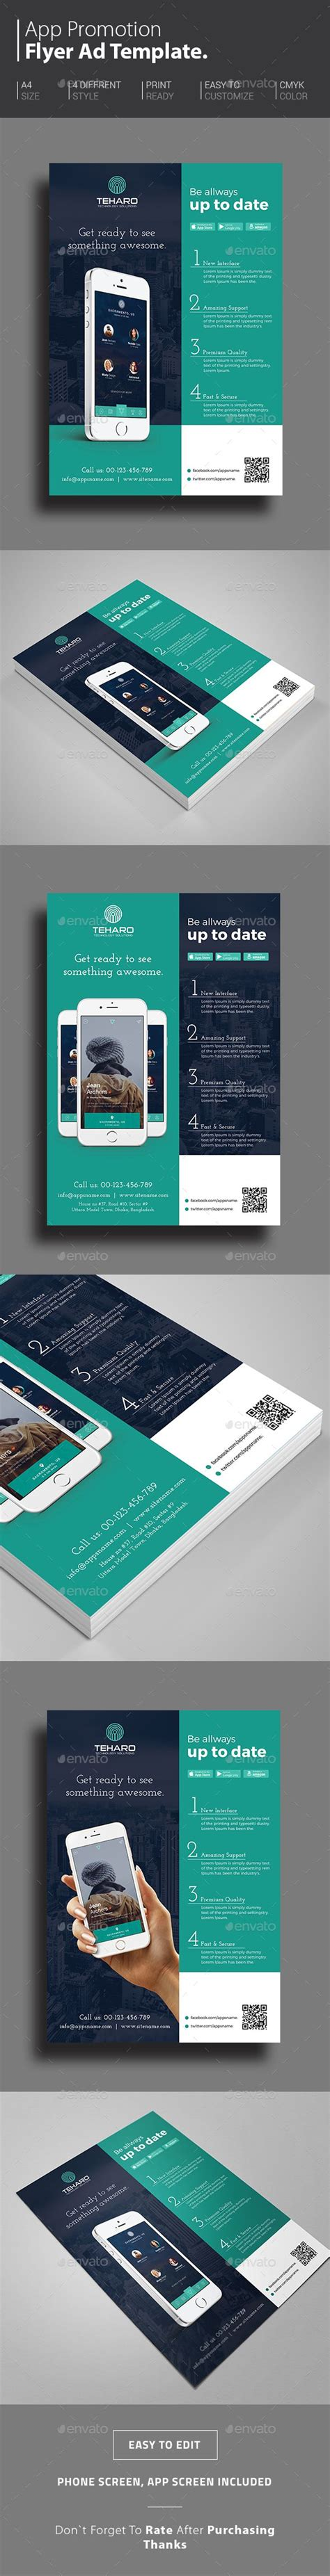 flyer design software for android 375 best images about portfolio layout on pinterest